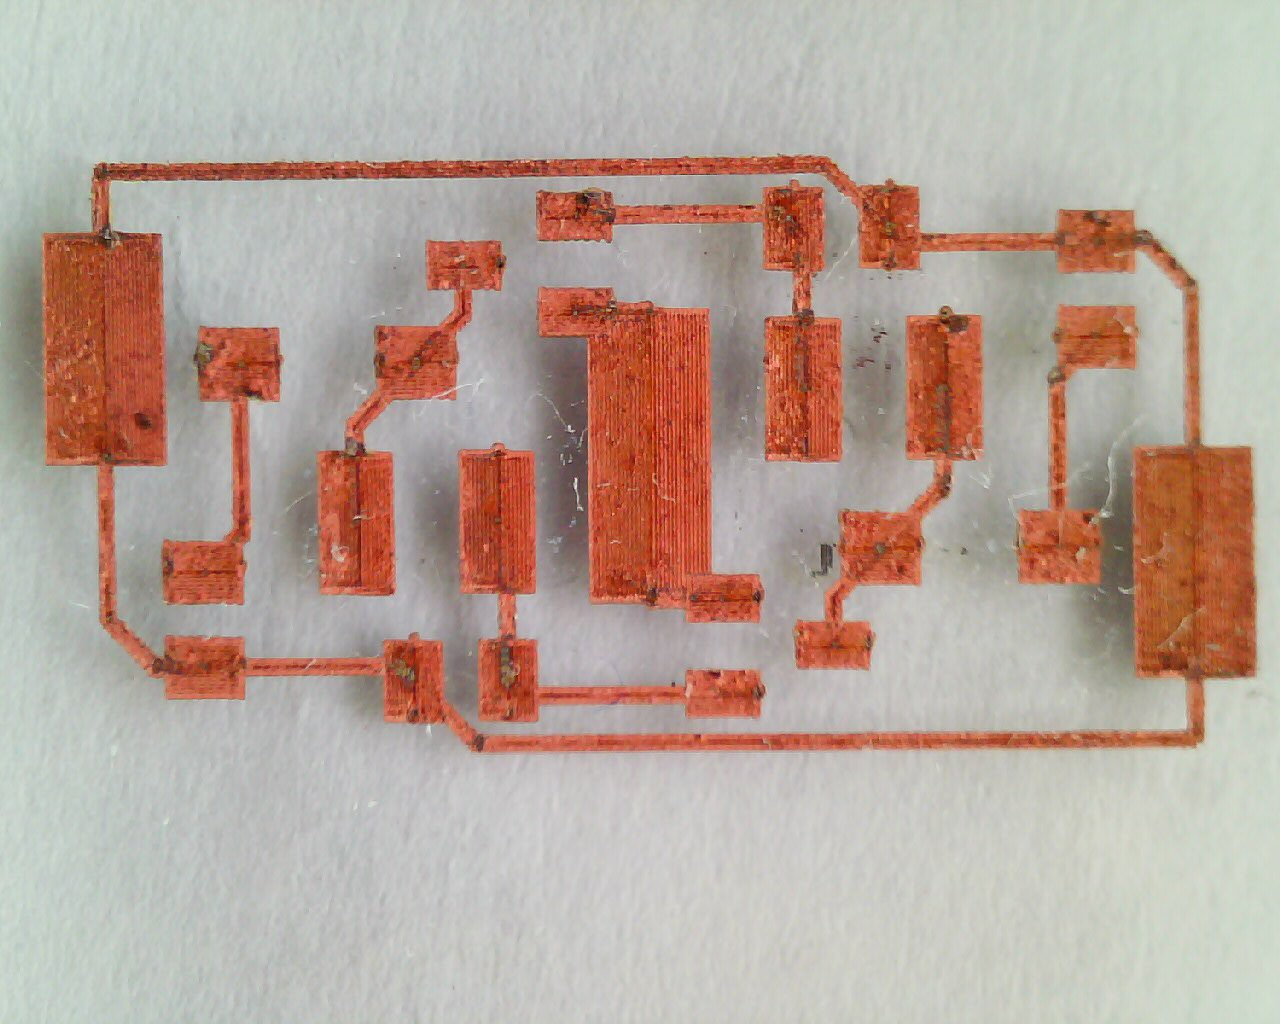 Printed Circuit Boards Board Module Pcb Dishwasher Main Substrate Polyimide Kapton On Glass Microscope Slide Precursor Saturated Copperii Formate Solution Process Detergent As Wetting Agent